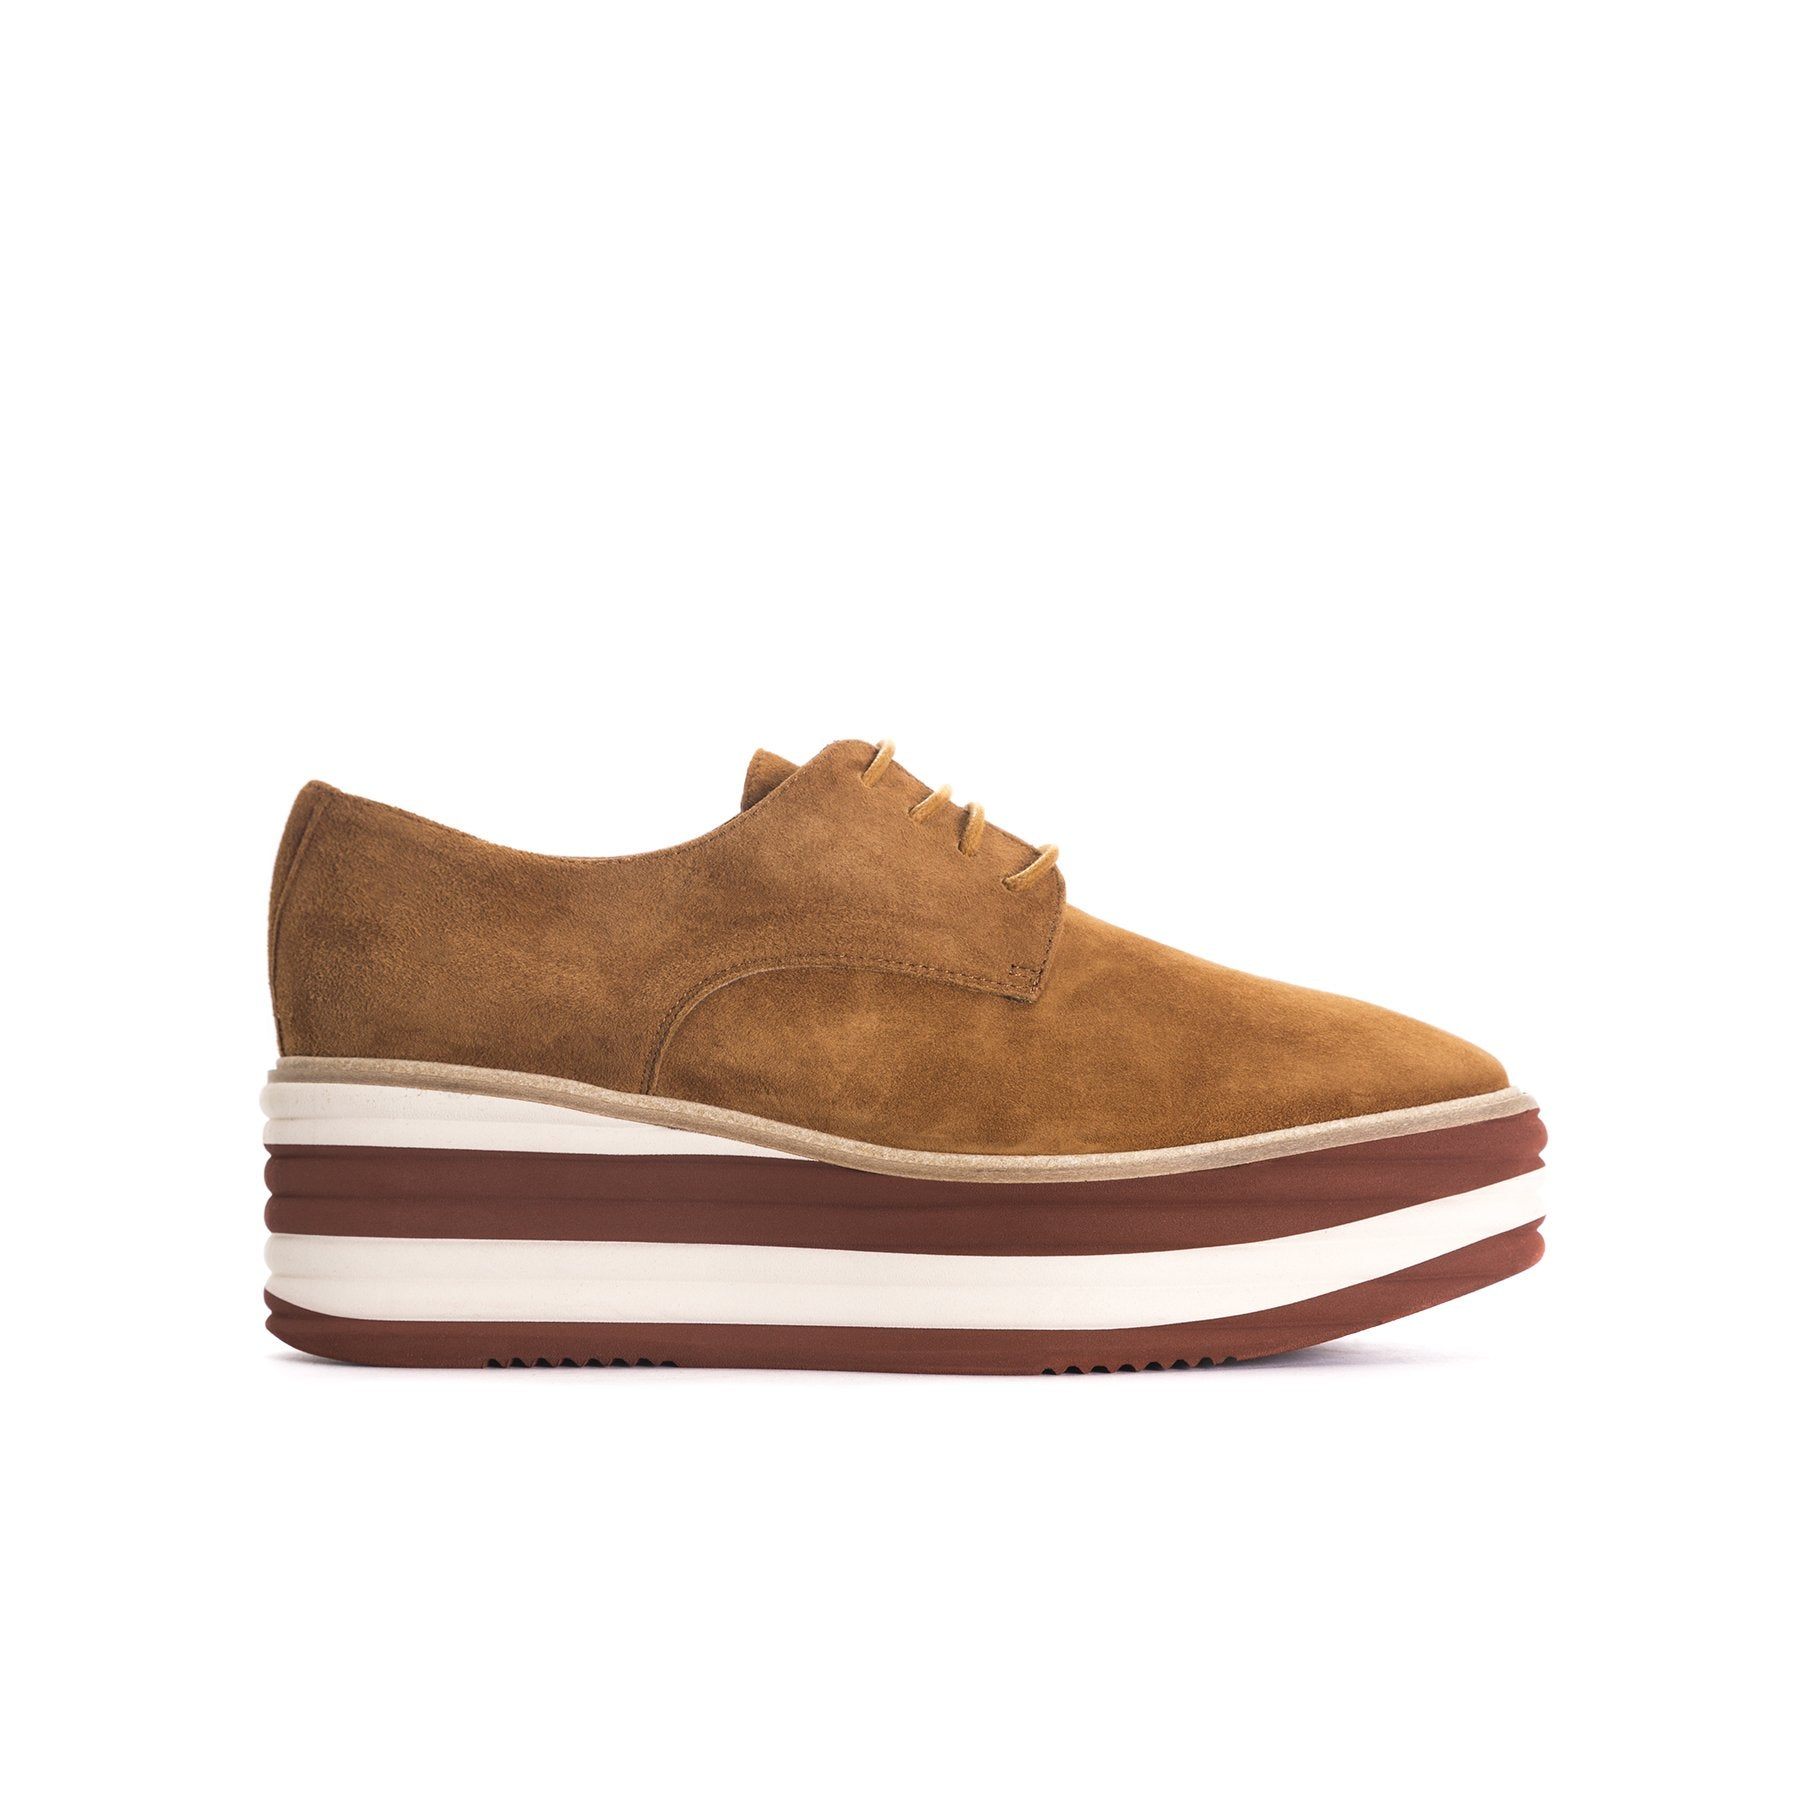 Lisa Tan Suede Flatforms